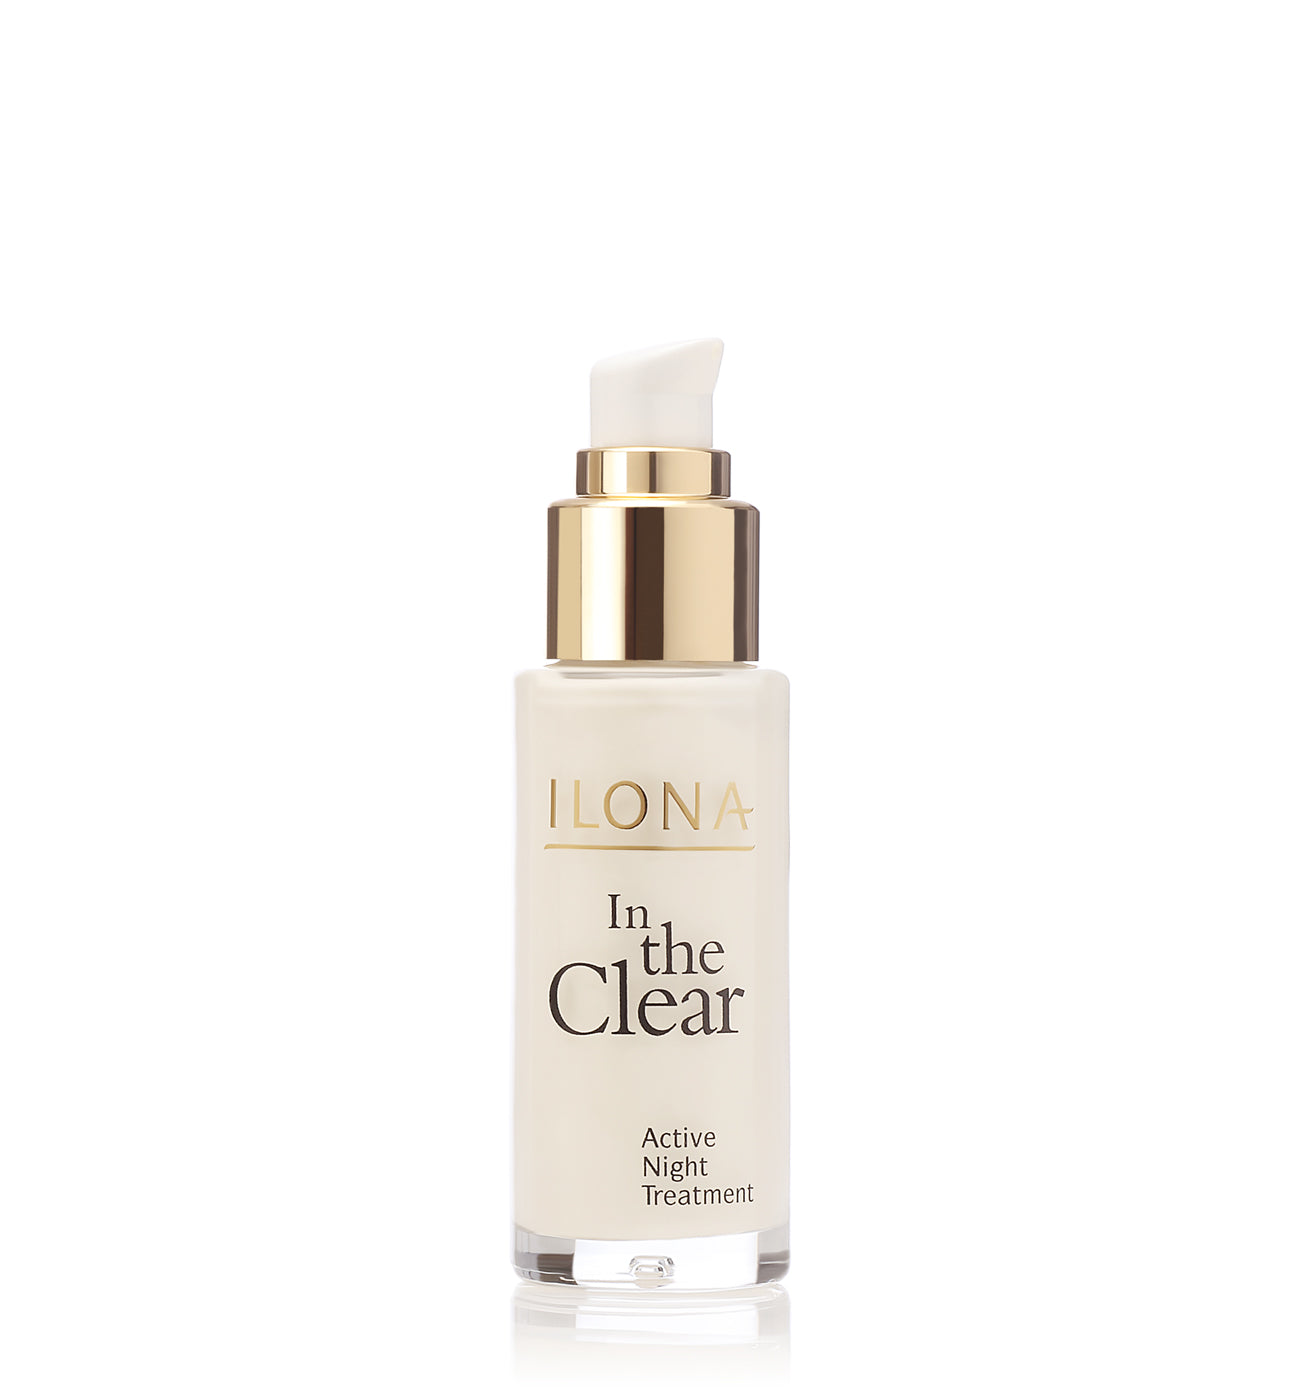 In the Clear _ Skin Clearing Regimen